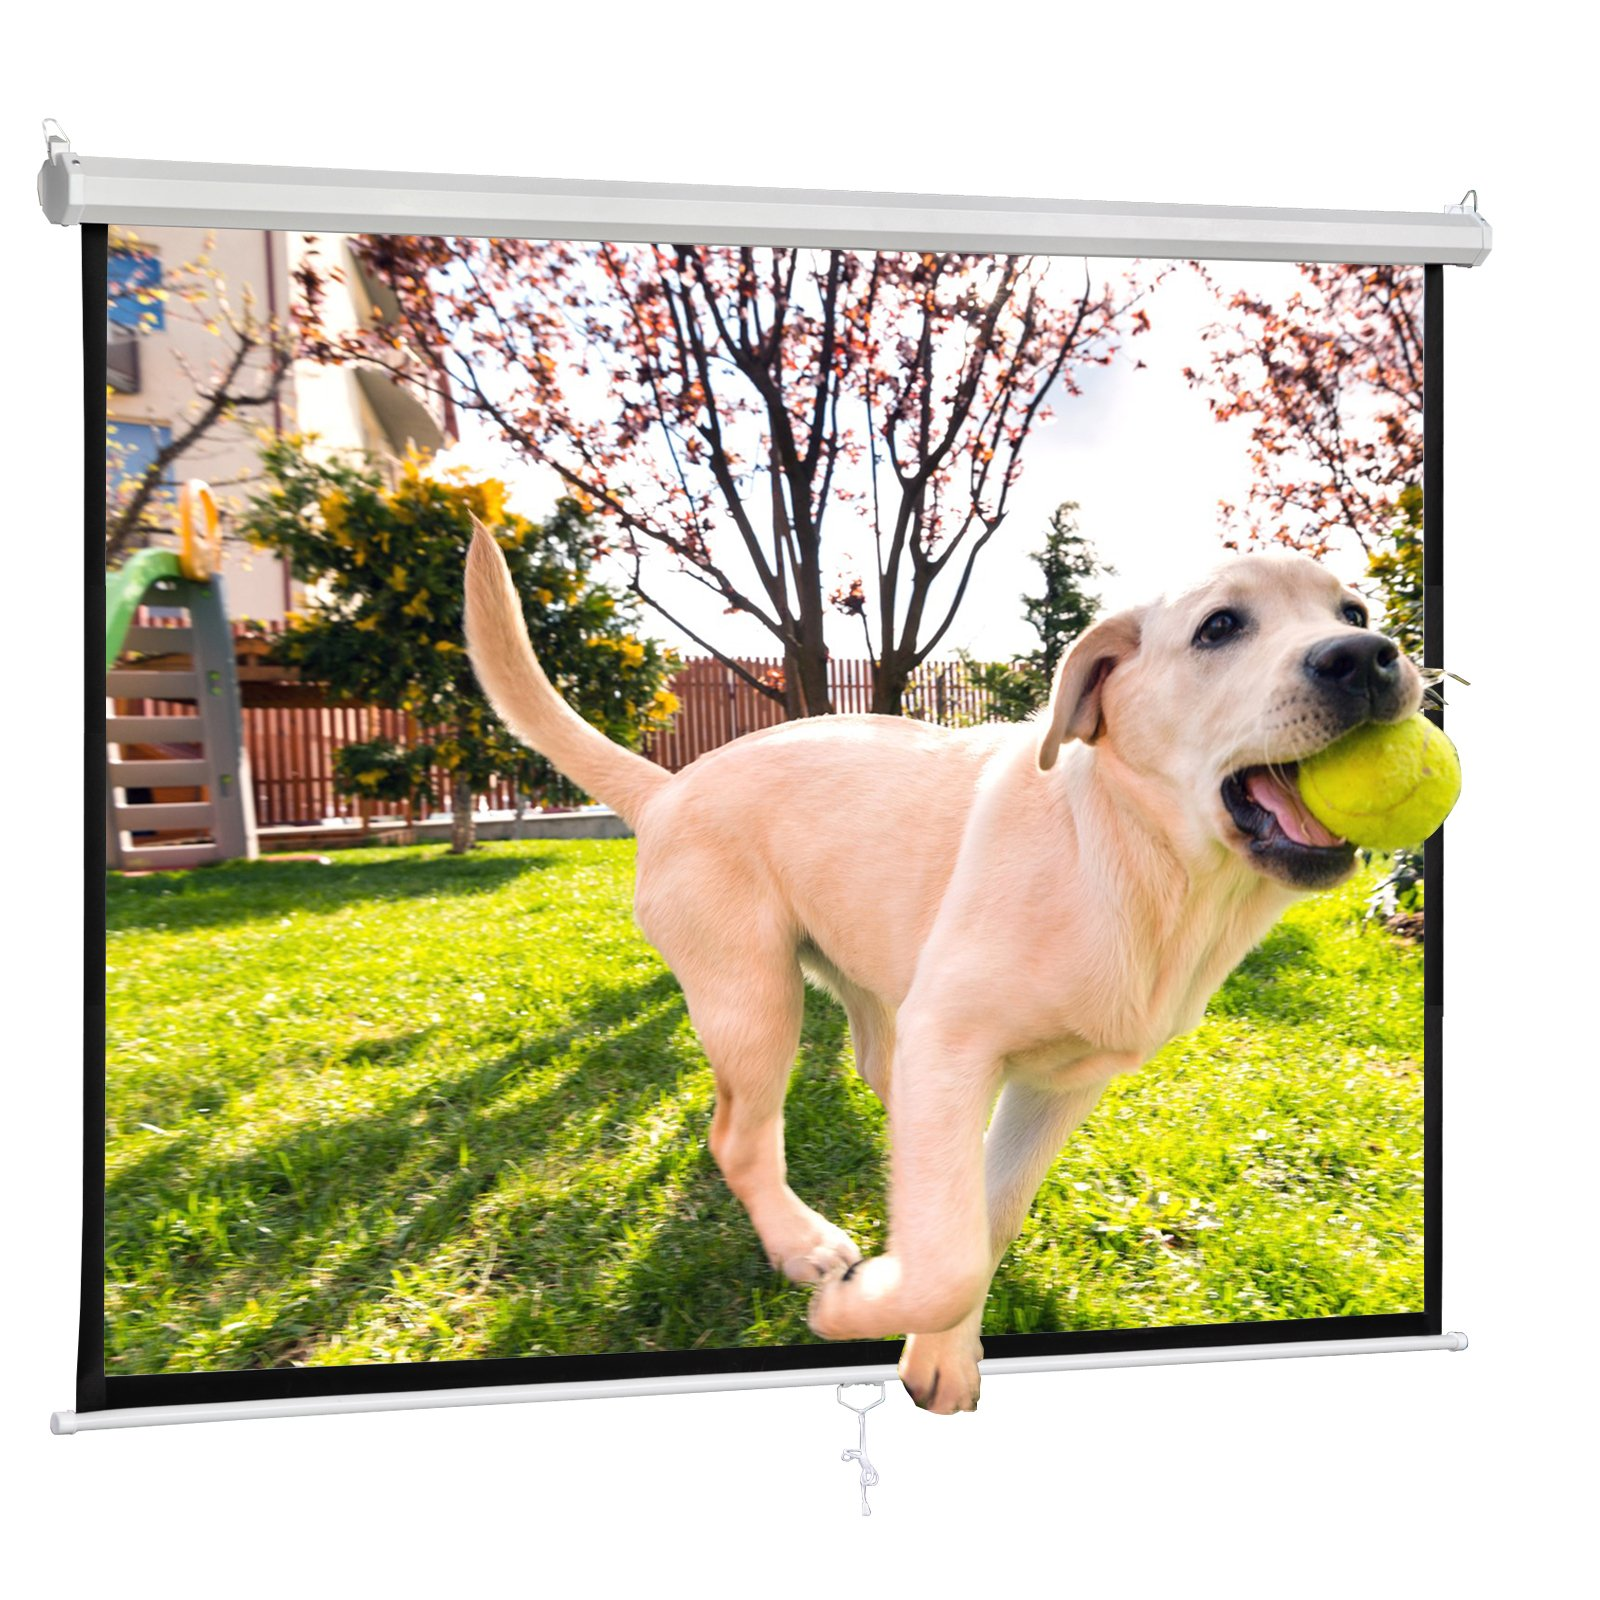 F2C Office Video Projector Projection Screen 119'' Diagonal 84''X 84'' 1:1 Format HD Display 160° Viewing Range Portable Manual Pull Down Screen Home Movie Theater Presentation Indoor Outdoor